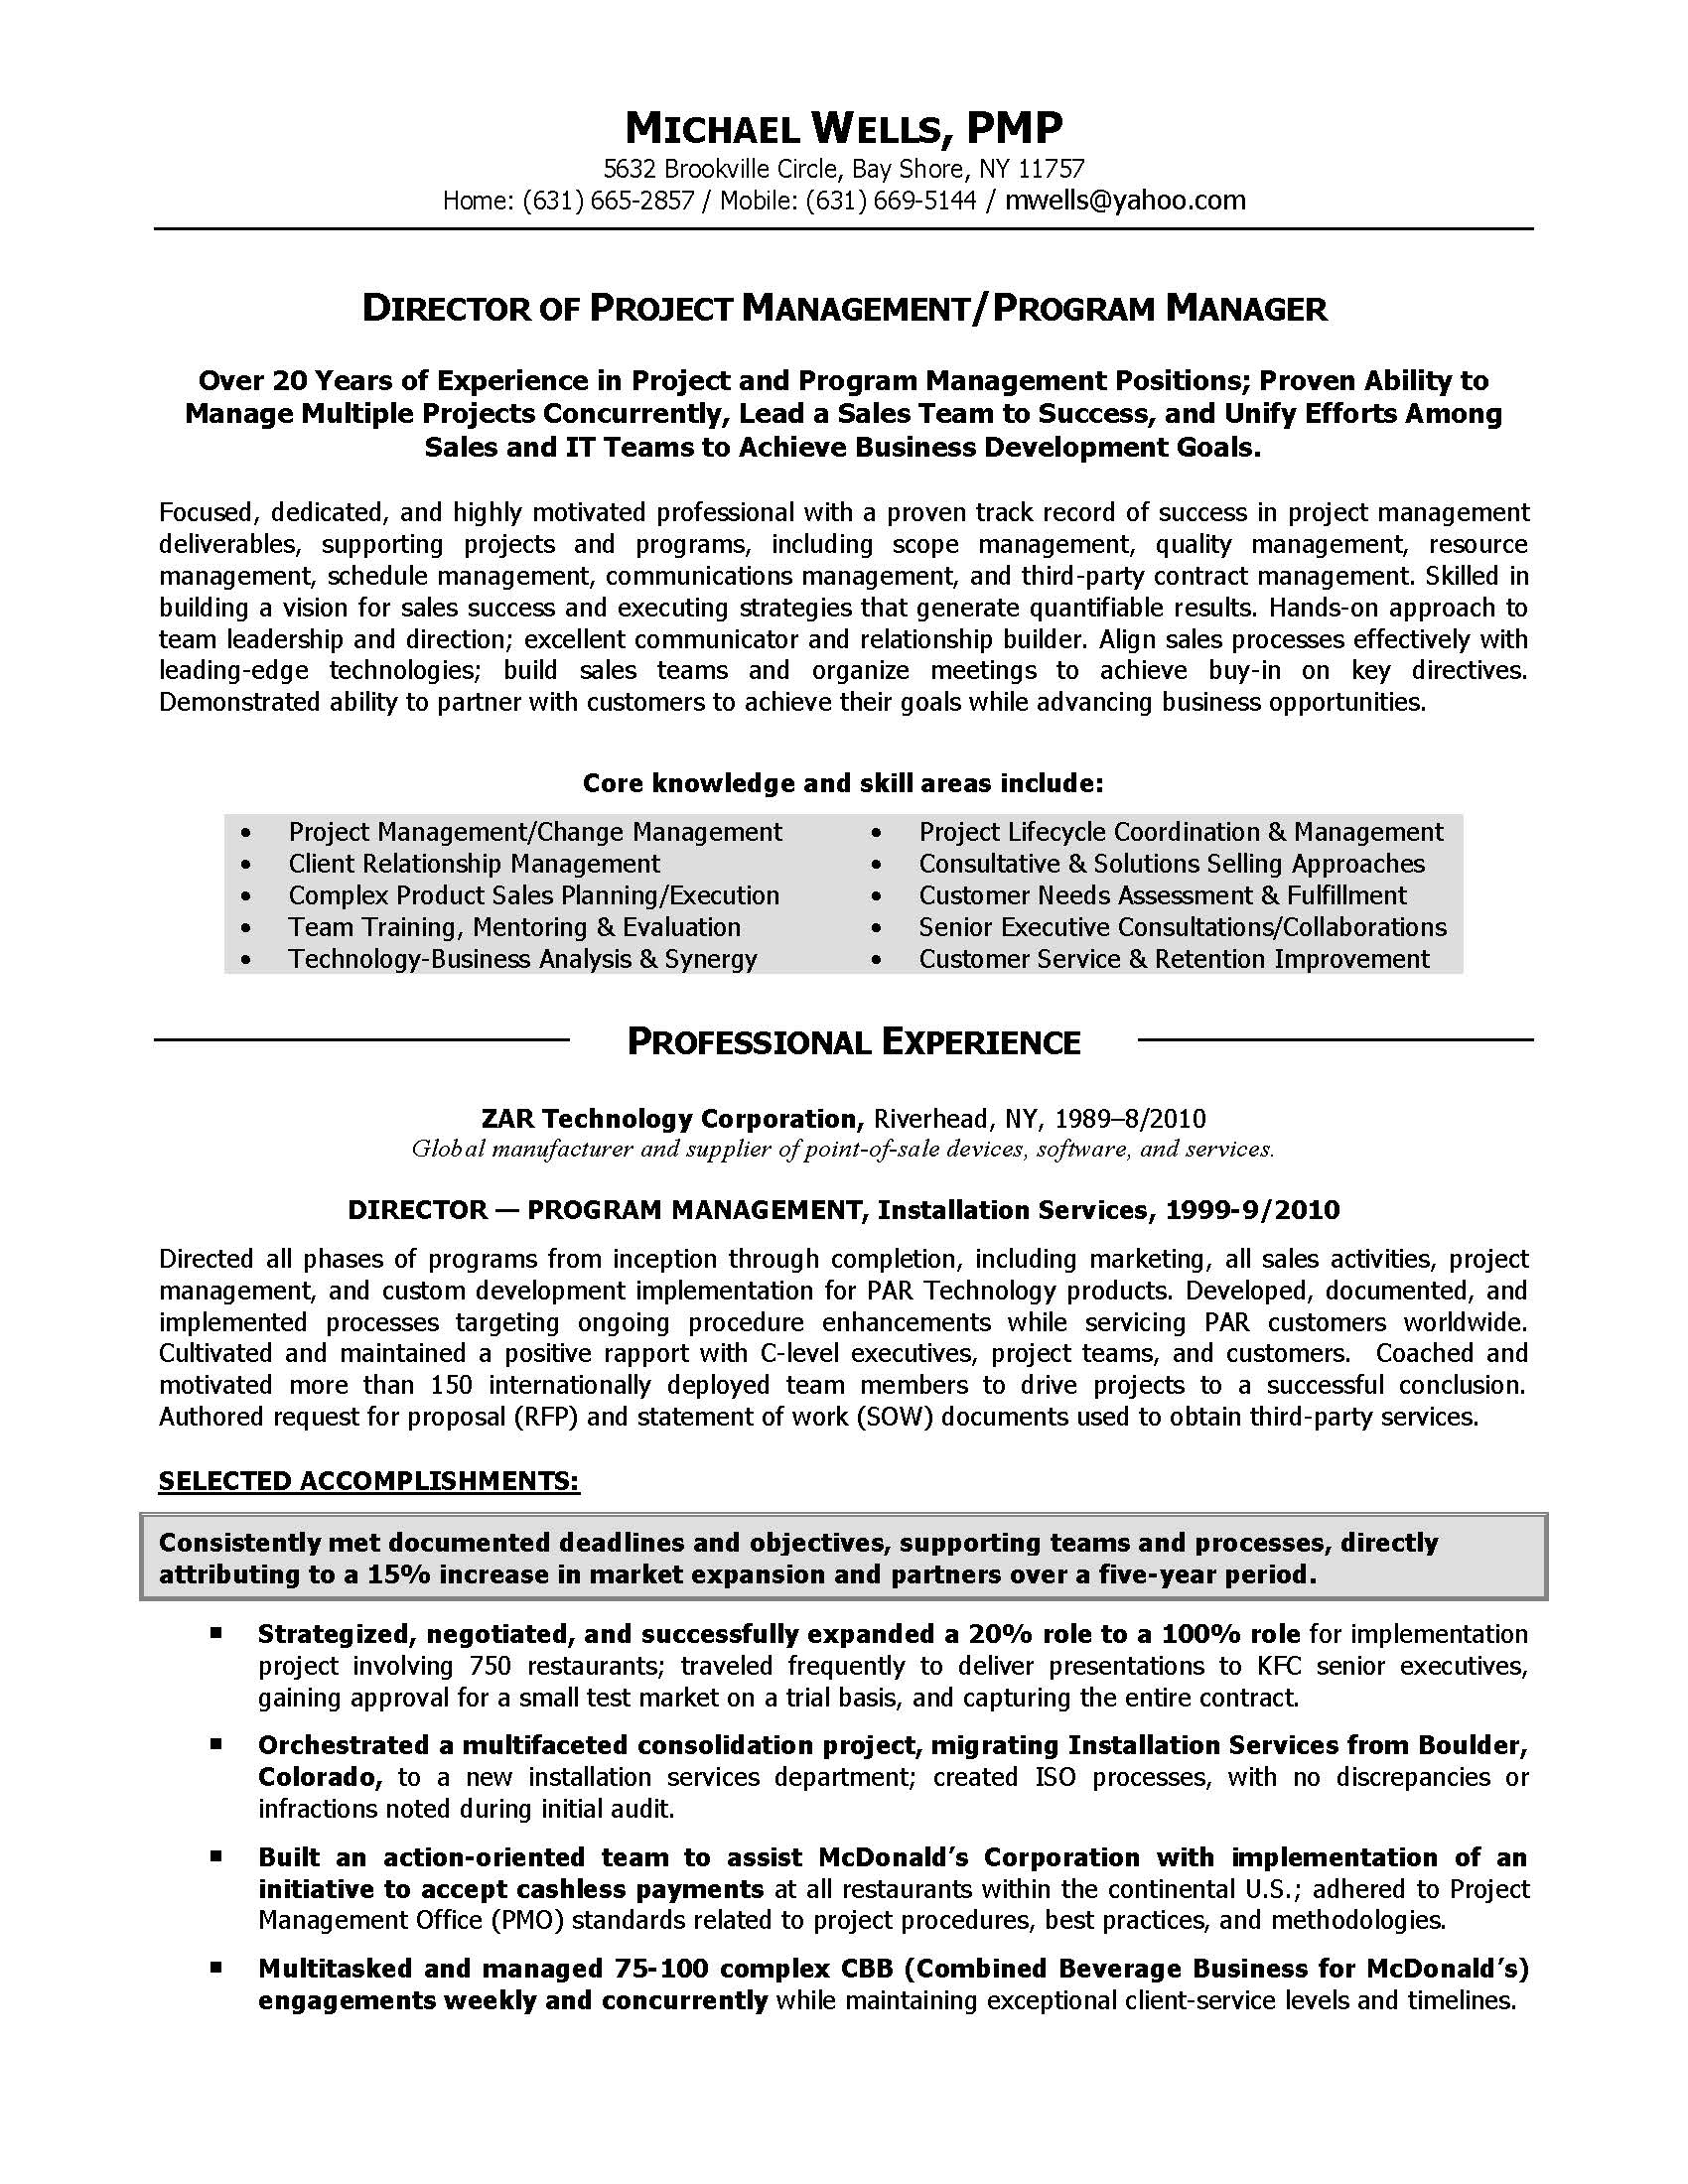 Project Management Director Resume Sample, Provided By Elite Resume Writing  Services  Program Manager Resume Samples